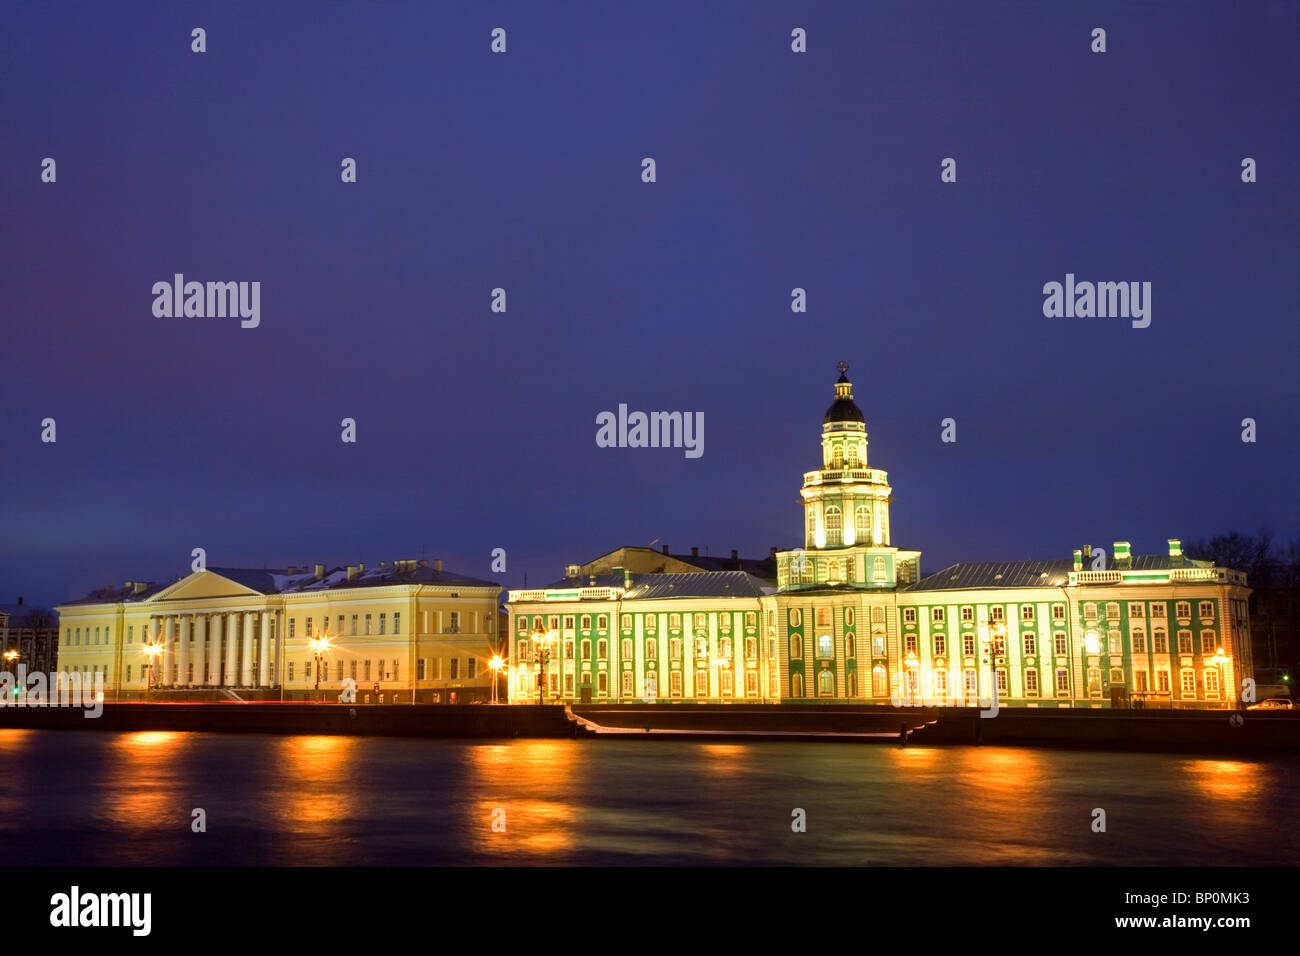 Russia, St. Petersburg; Th Neva River with the 'Kunstkamera' and part of the State University building beside - Stock Image